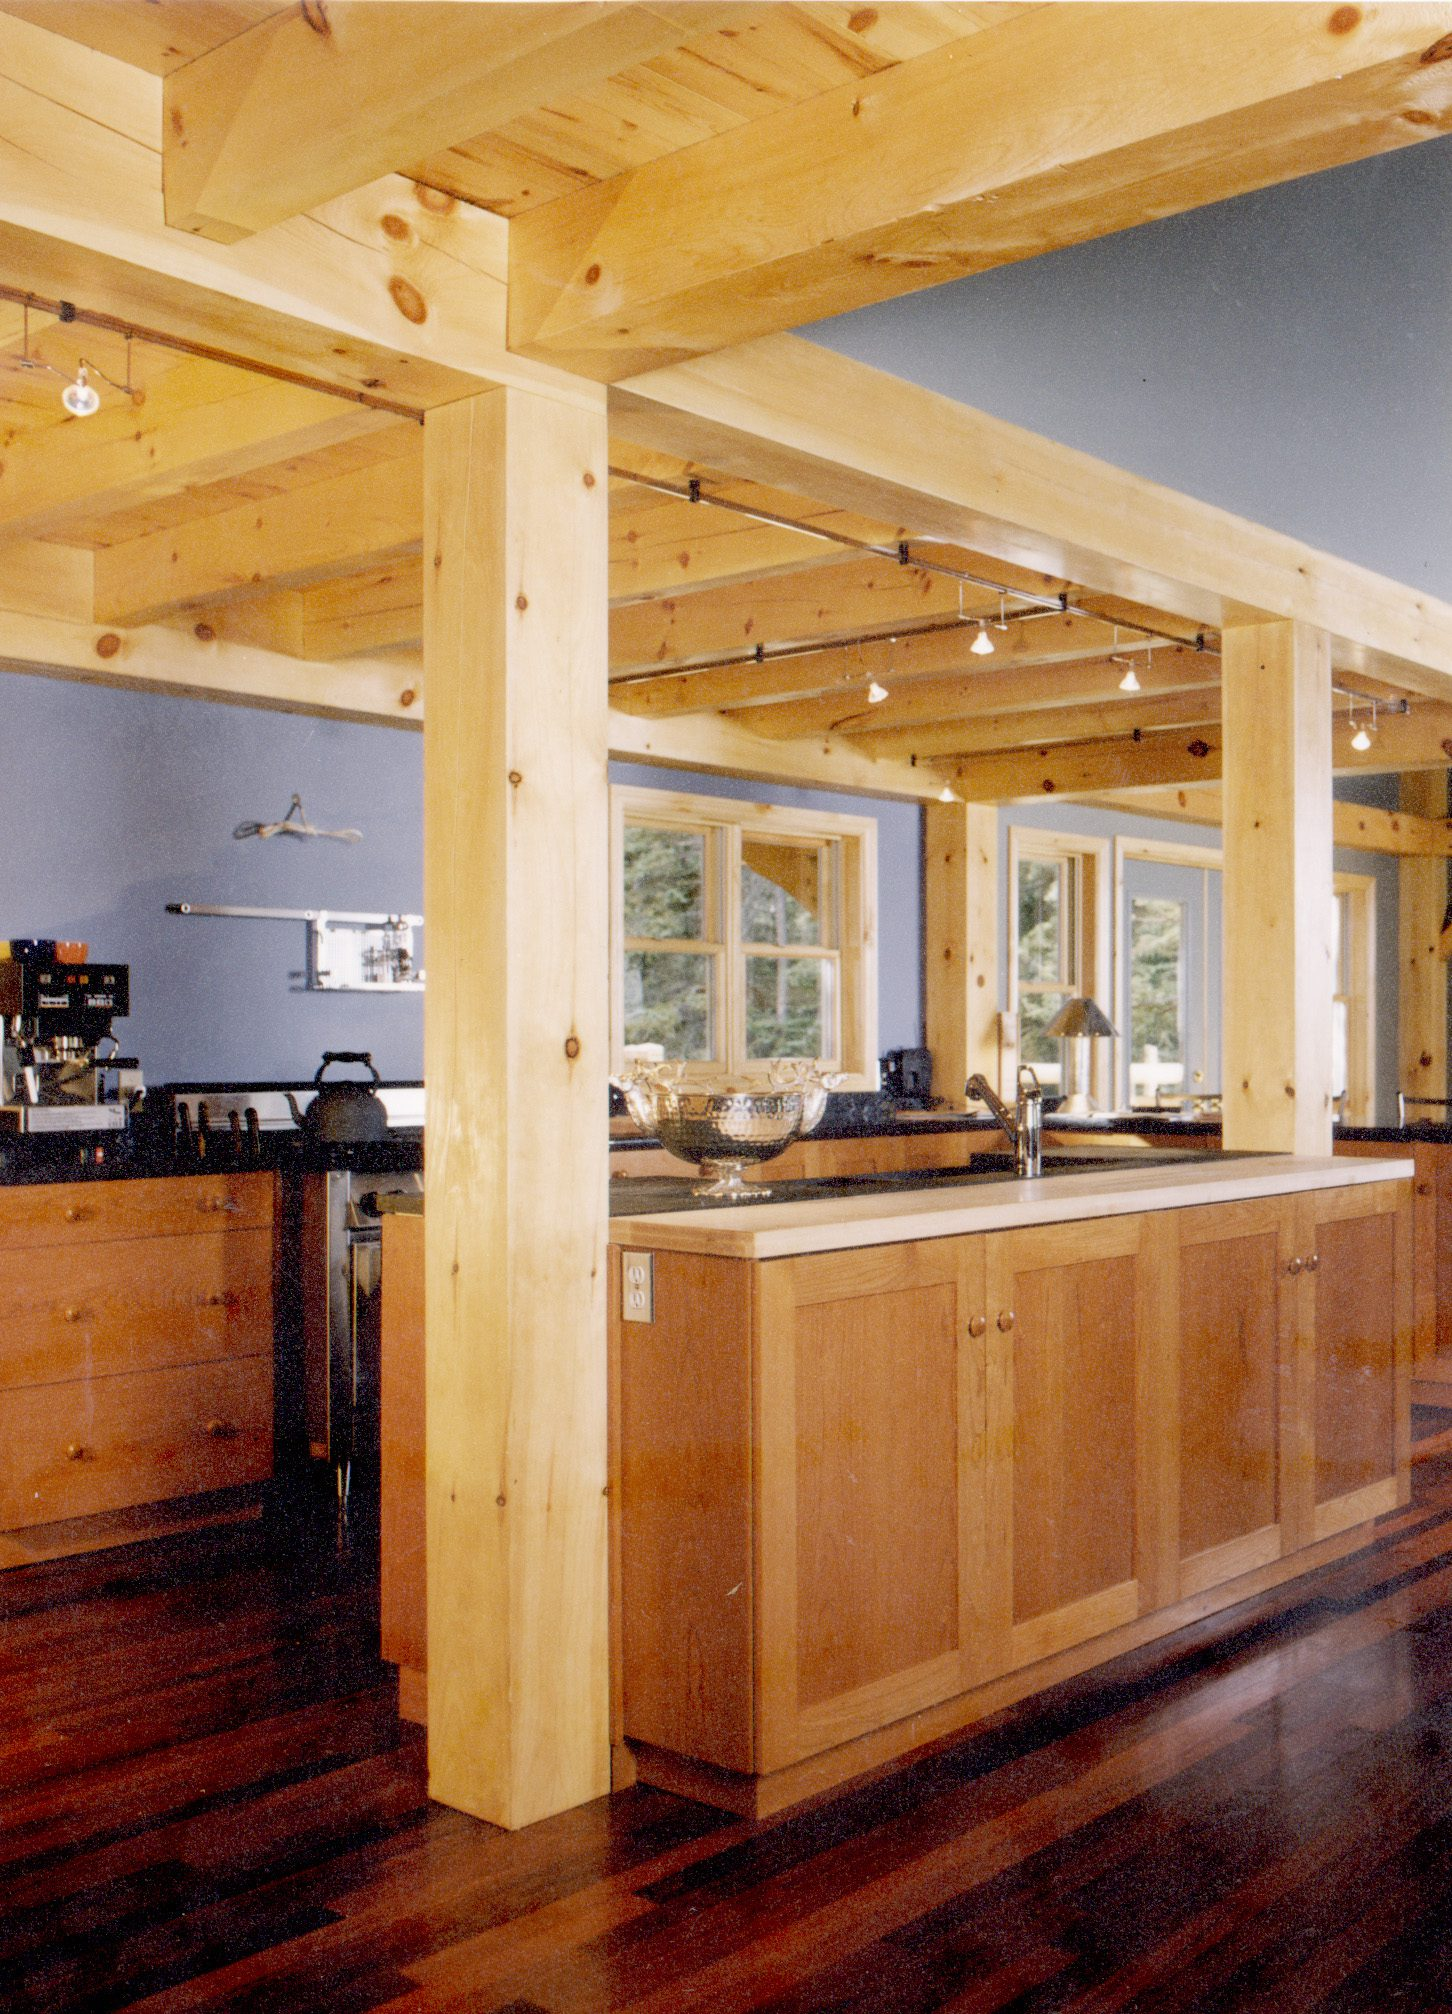 Normerica Timber Frames, Commercial Projects, Buffalo Mountain Lodge, Hotel, Banff, Canada, Interior, Bar